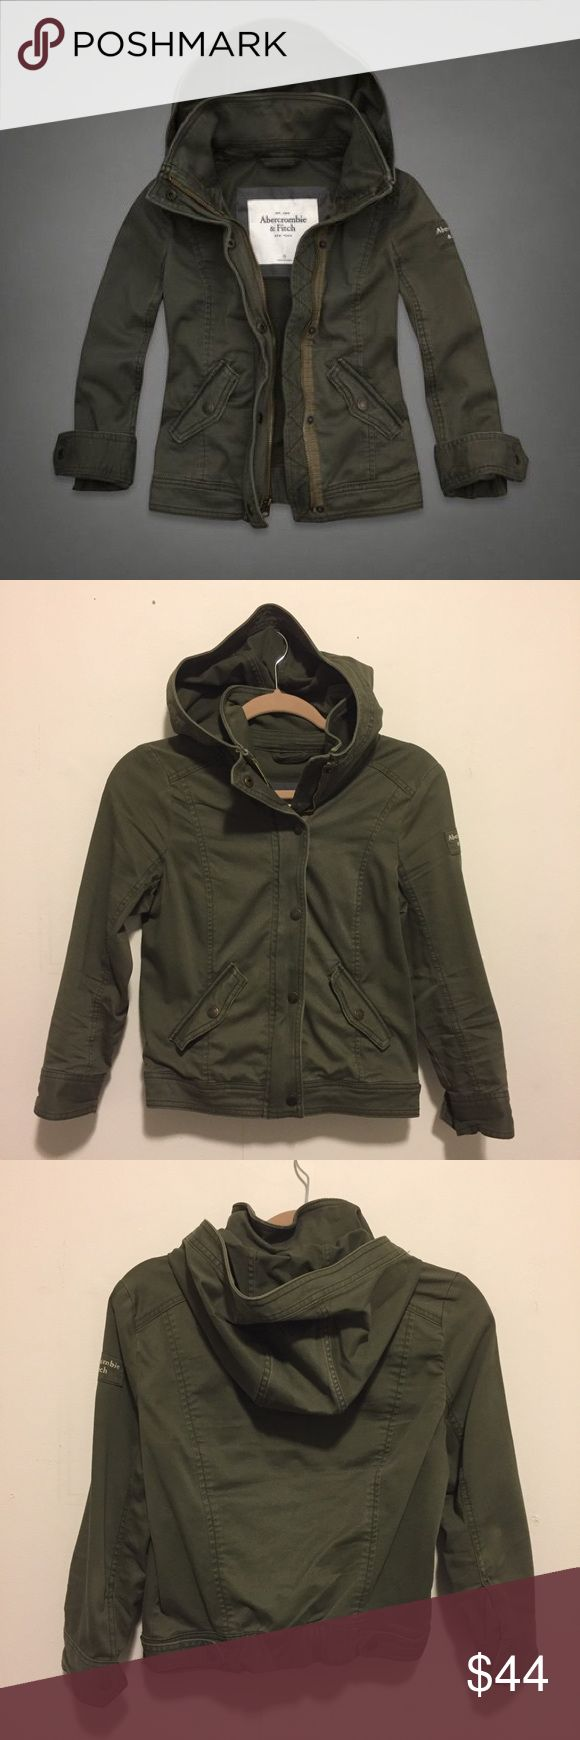 🌲 Abercrombie olive hooded military jacket 🌲 Abercrombie & Fitch hooded military jacket, size L but fits like a S/M. Oliver green color. Snap and zipper closure with snap cuffs and front pockets. Like new condition. Abercrombie & Fitch Jackets & Coats